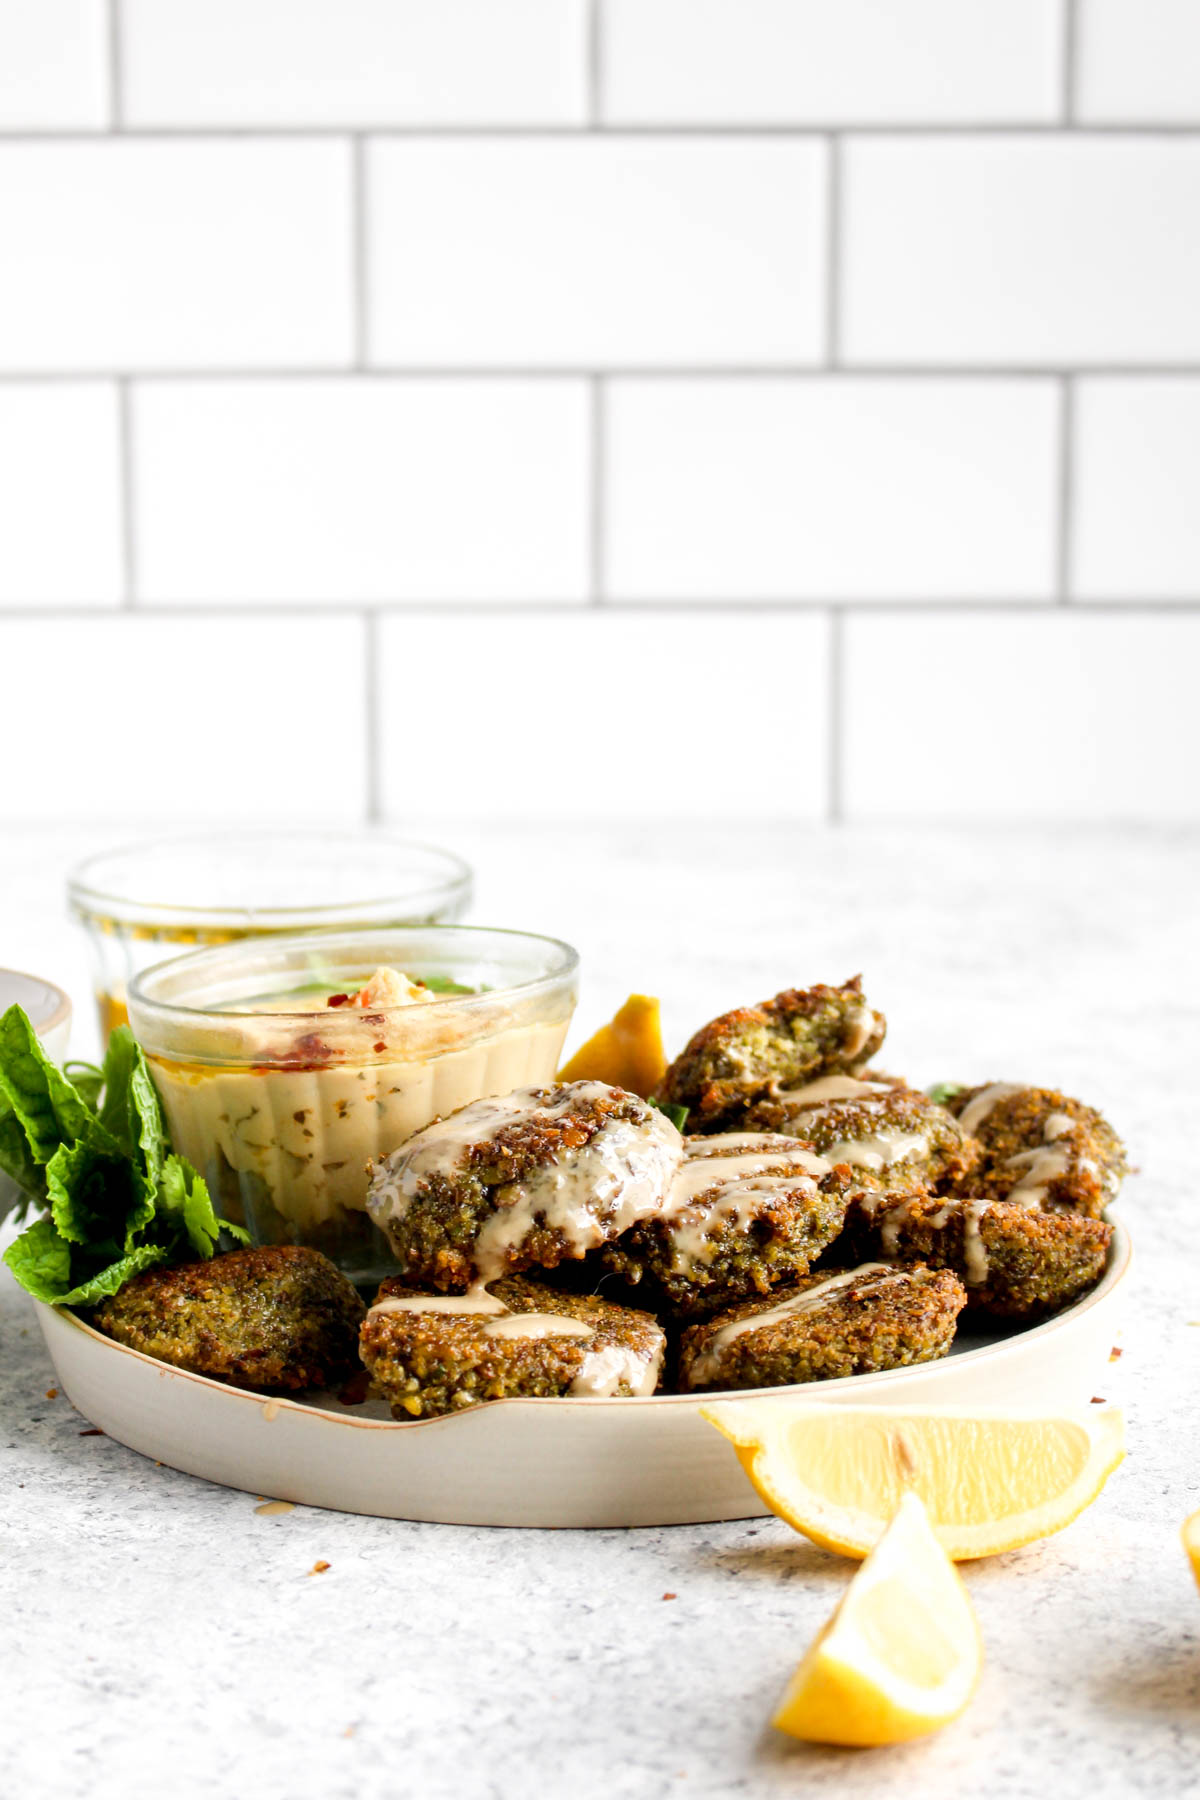 A plate of baked lentil falafel with a tahini drizzle and herbs.